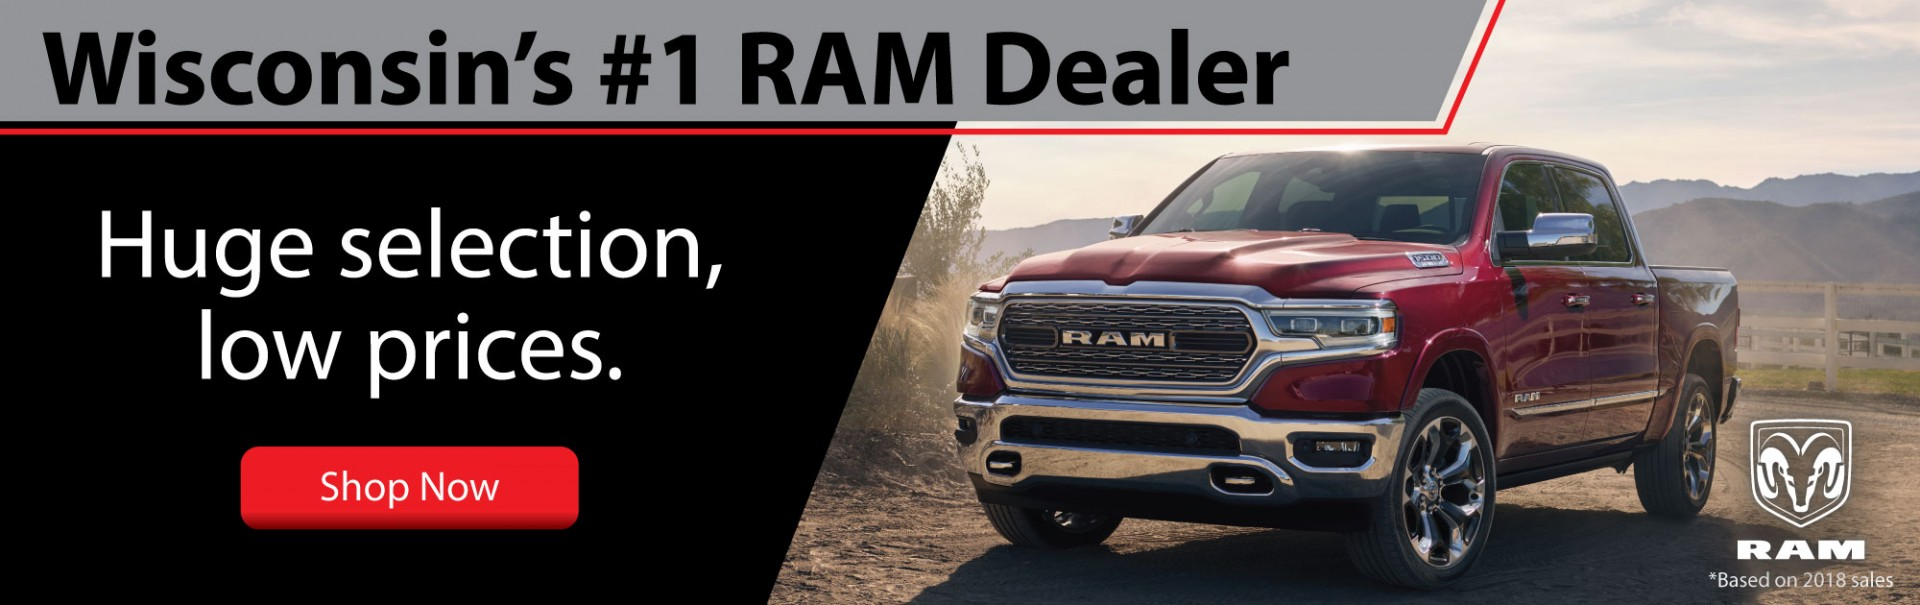 Wisconsins #1 RAM Dealer